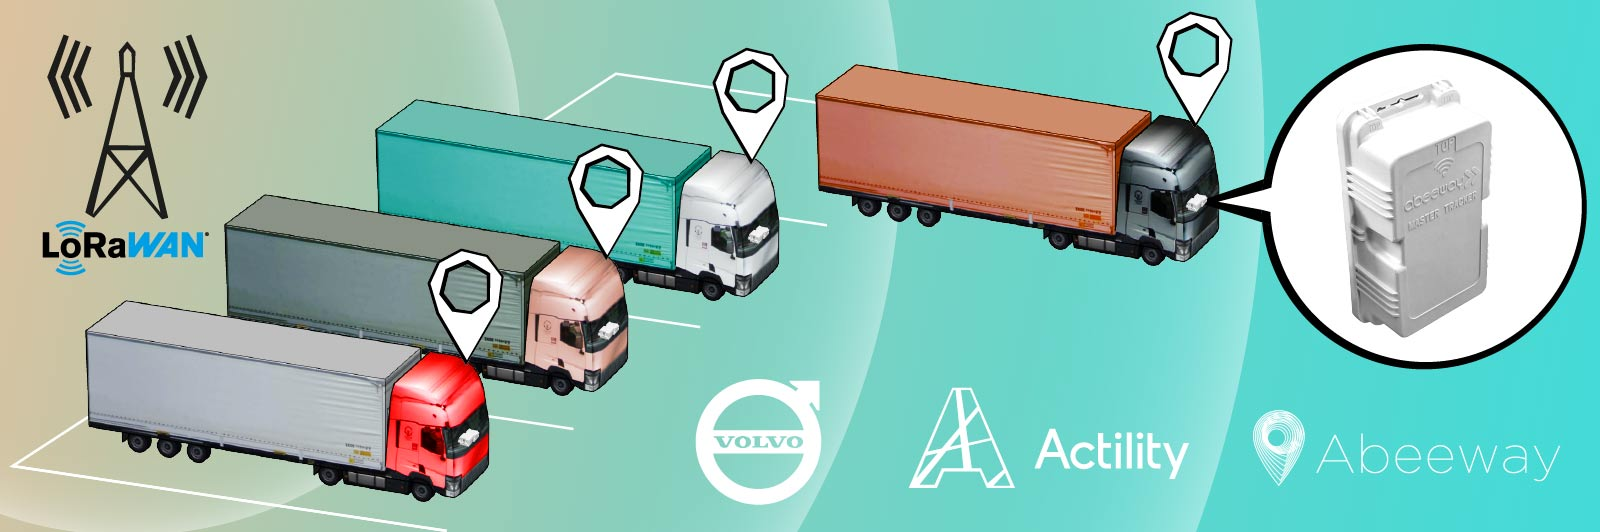 Picture of Volvo trucks with Abeeway geolocation trackers